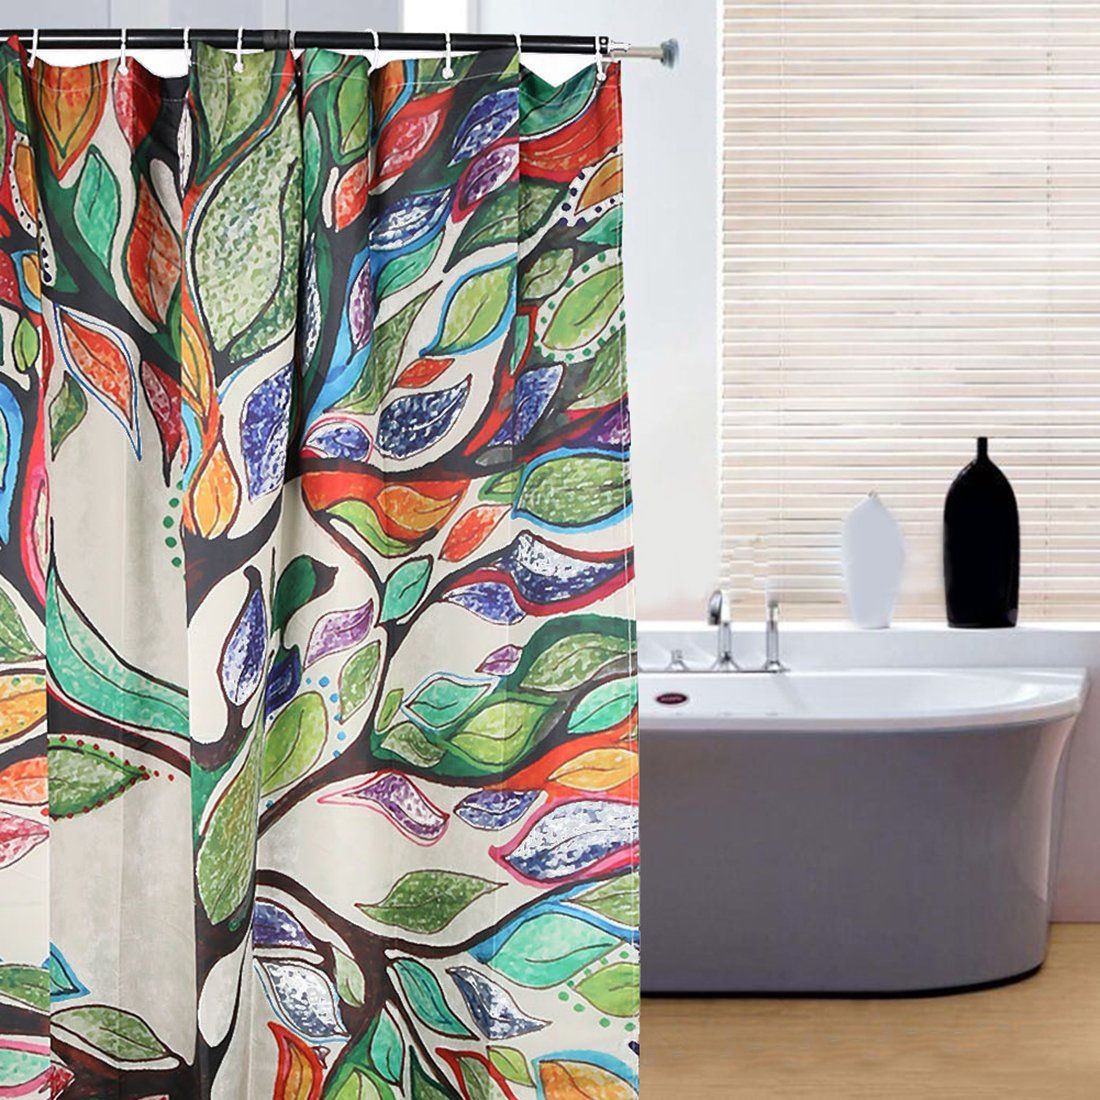 amazoncom oneoney colorful tree of life gorgeous like feather bathroom shower curtain custom polyester fabric kids decorative curtain ideas 60w x - Colorful Shower Curtains